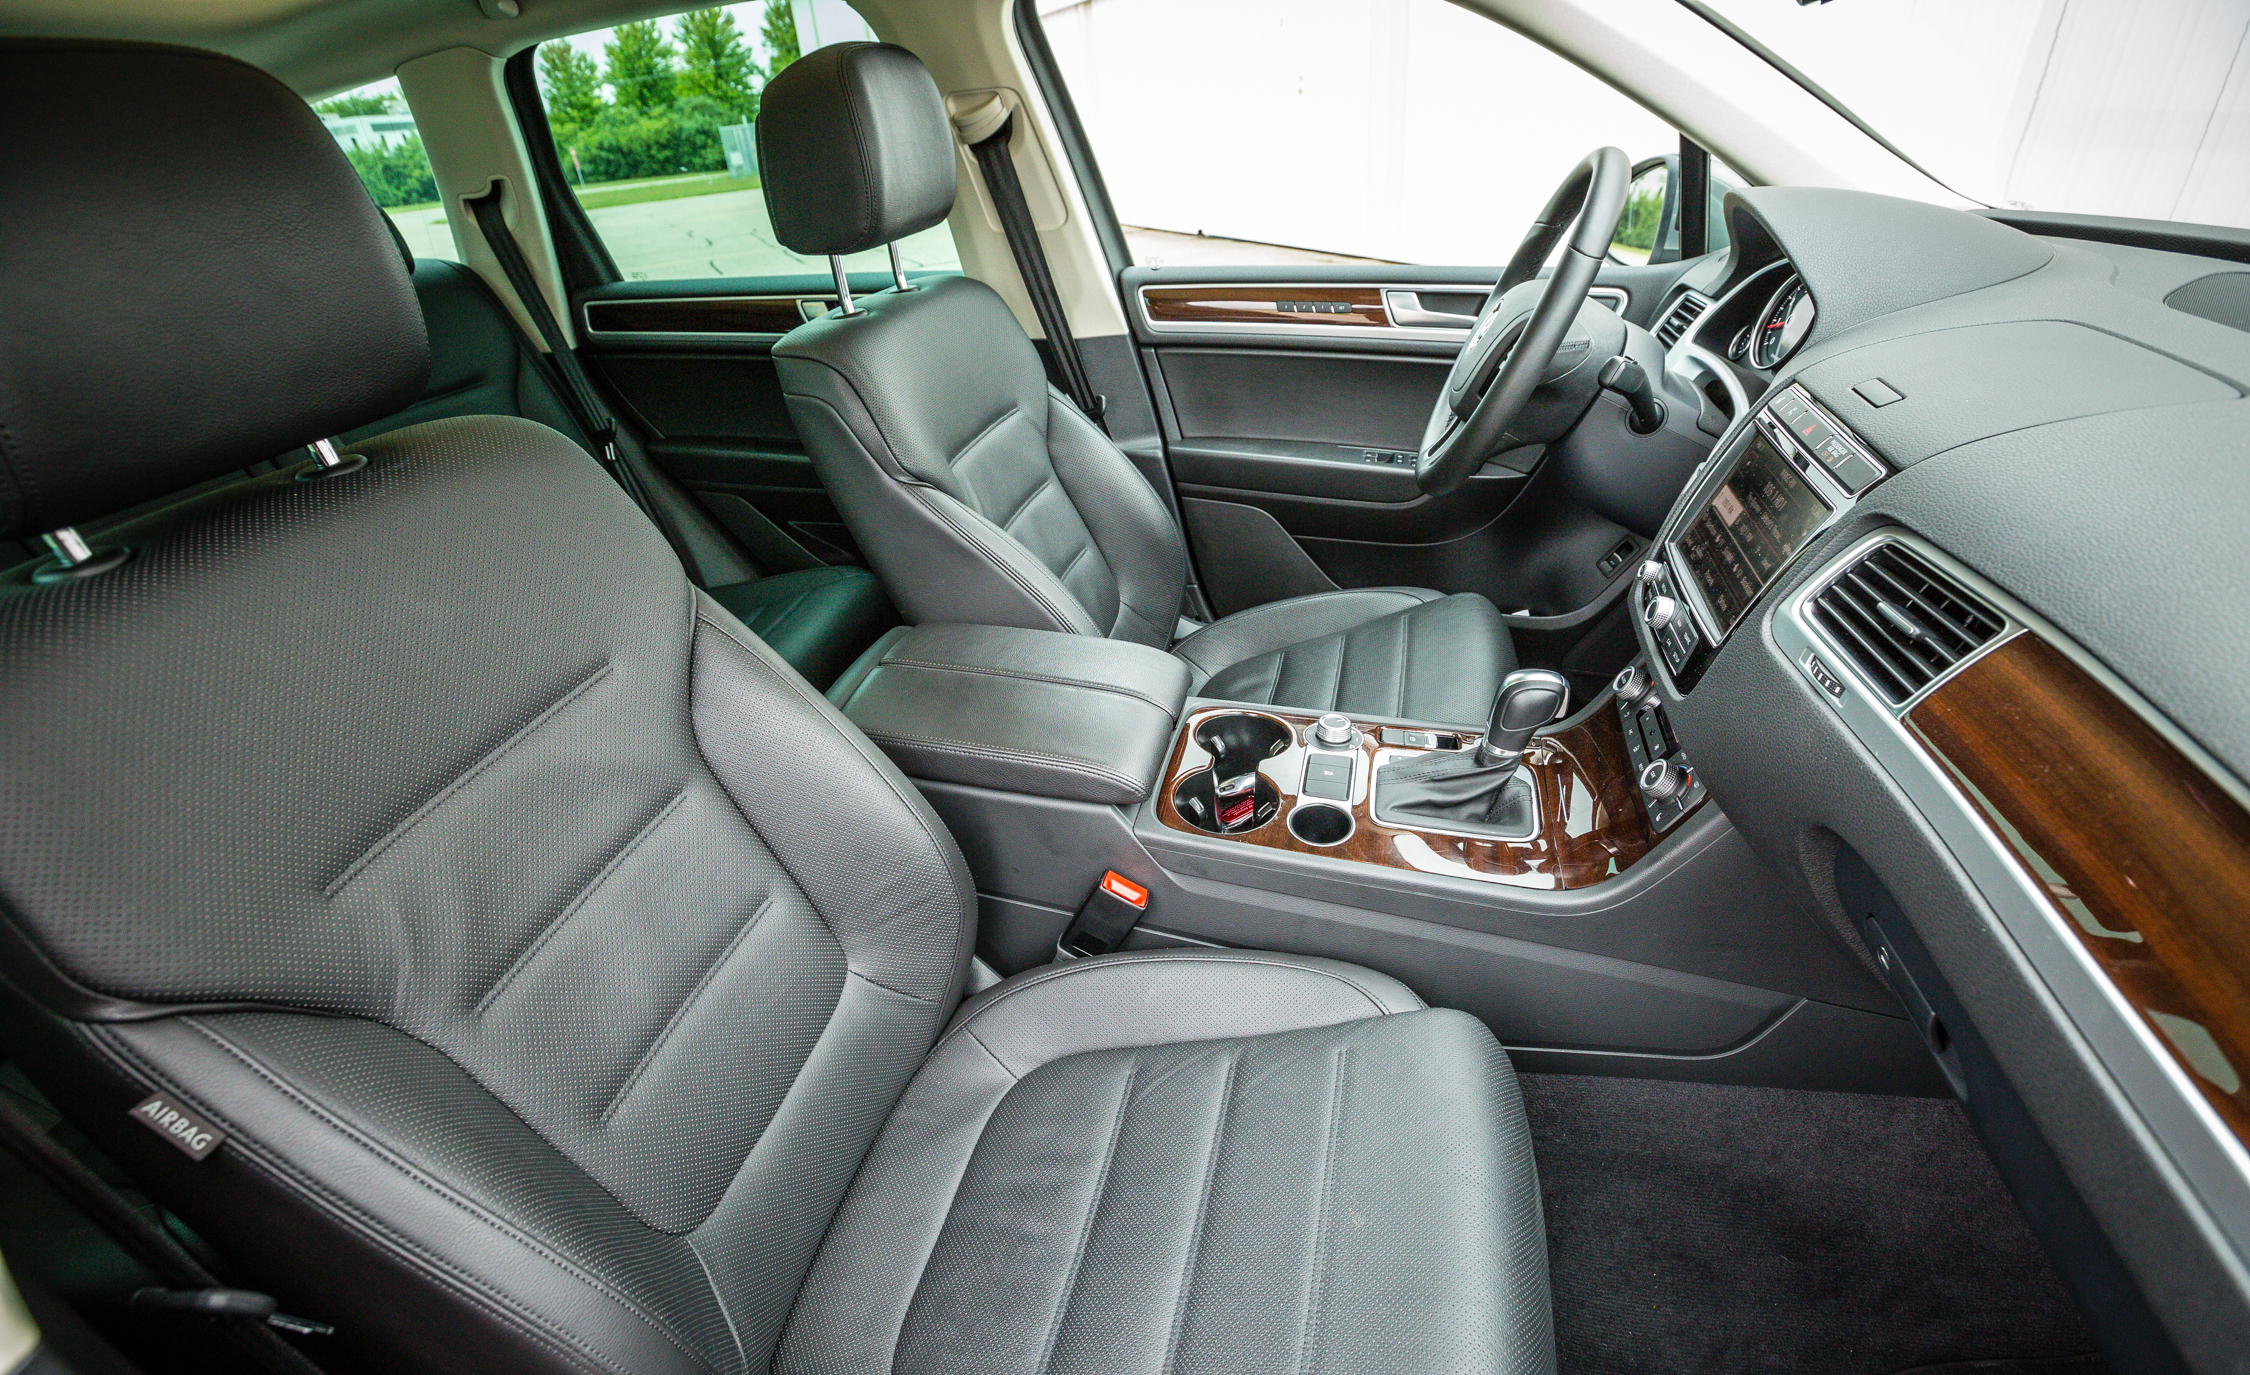 2016 Volkswagen Touareg Interior Seats Front (View 5 of 16)